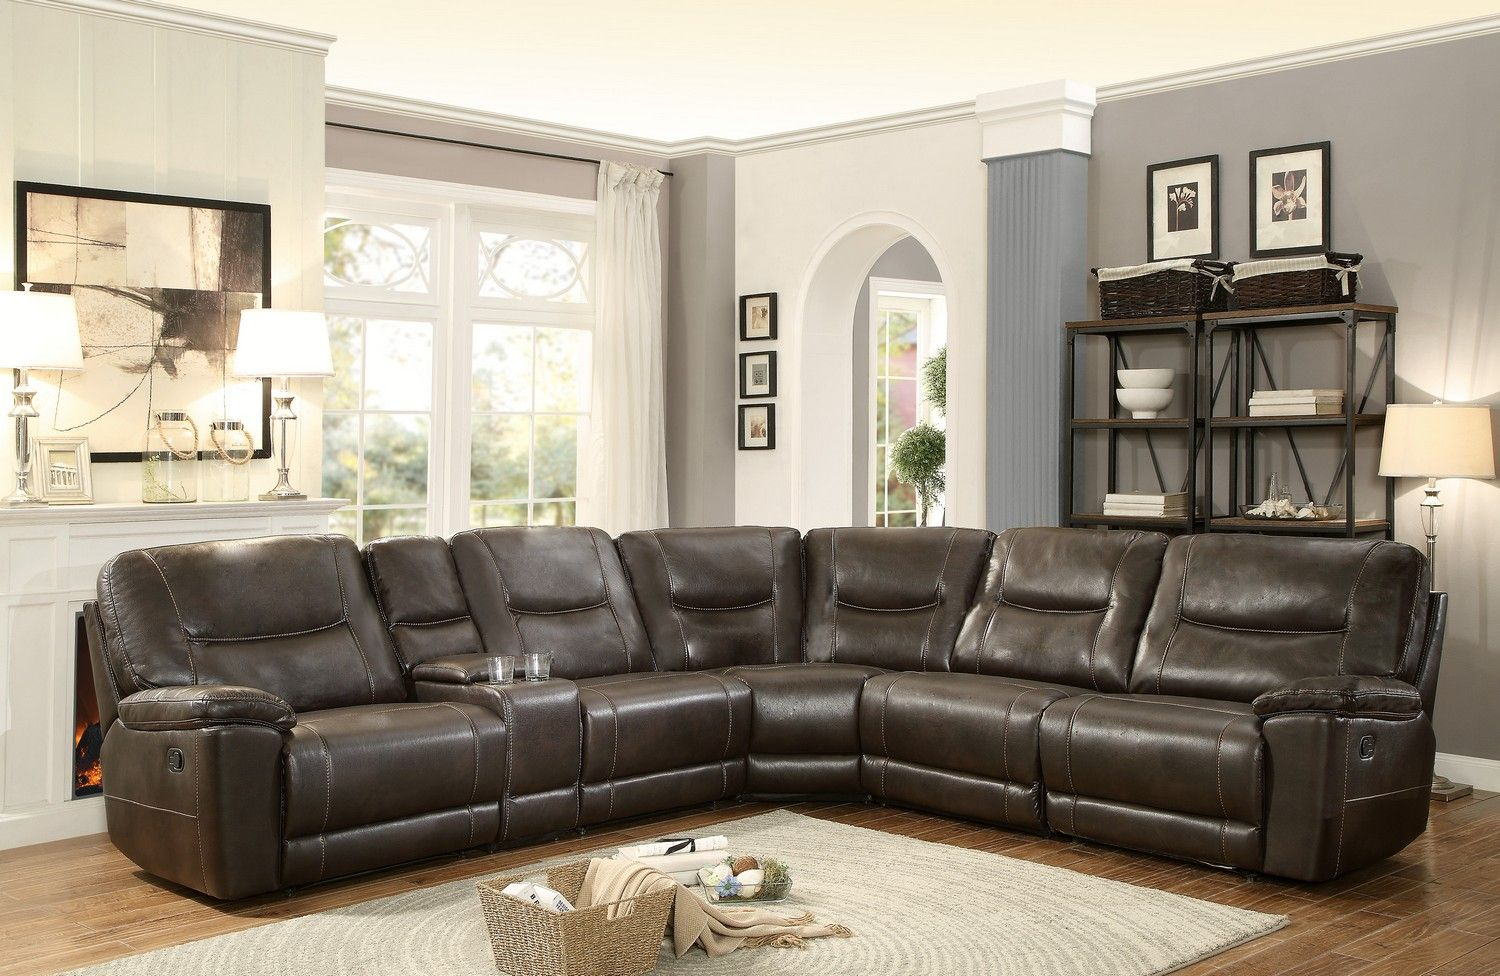 tosh furniture dark brown sofa set what size sheets fit a sleeper homelegance columbus reclining sectional d